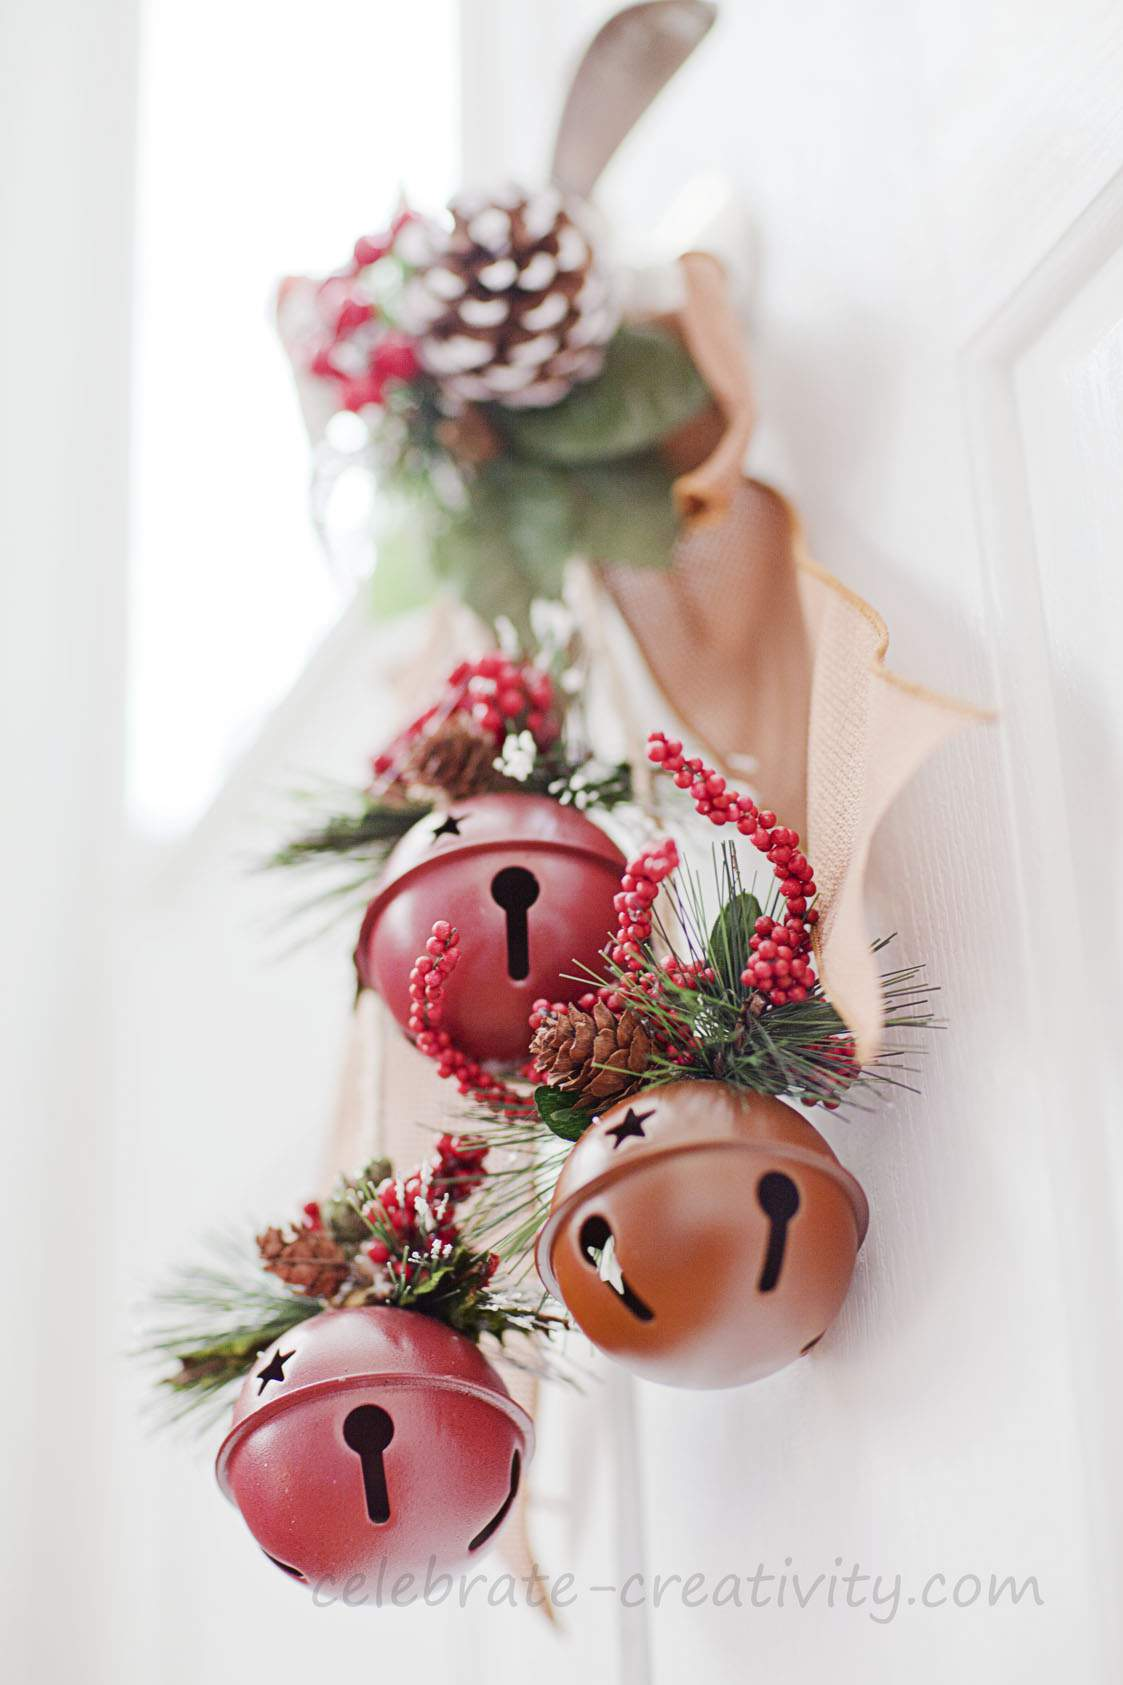 Celebrate creativity for Christmas at home decorations